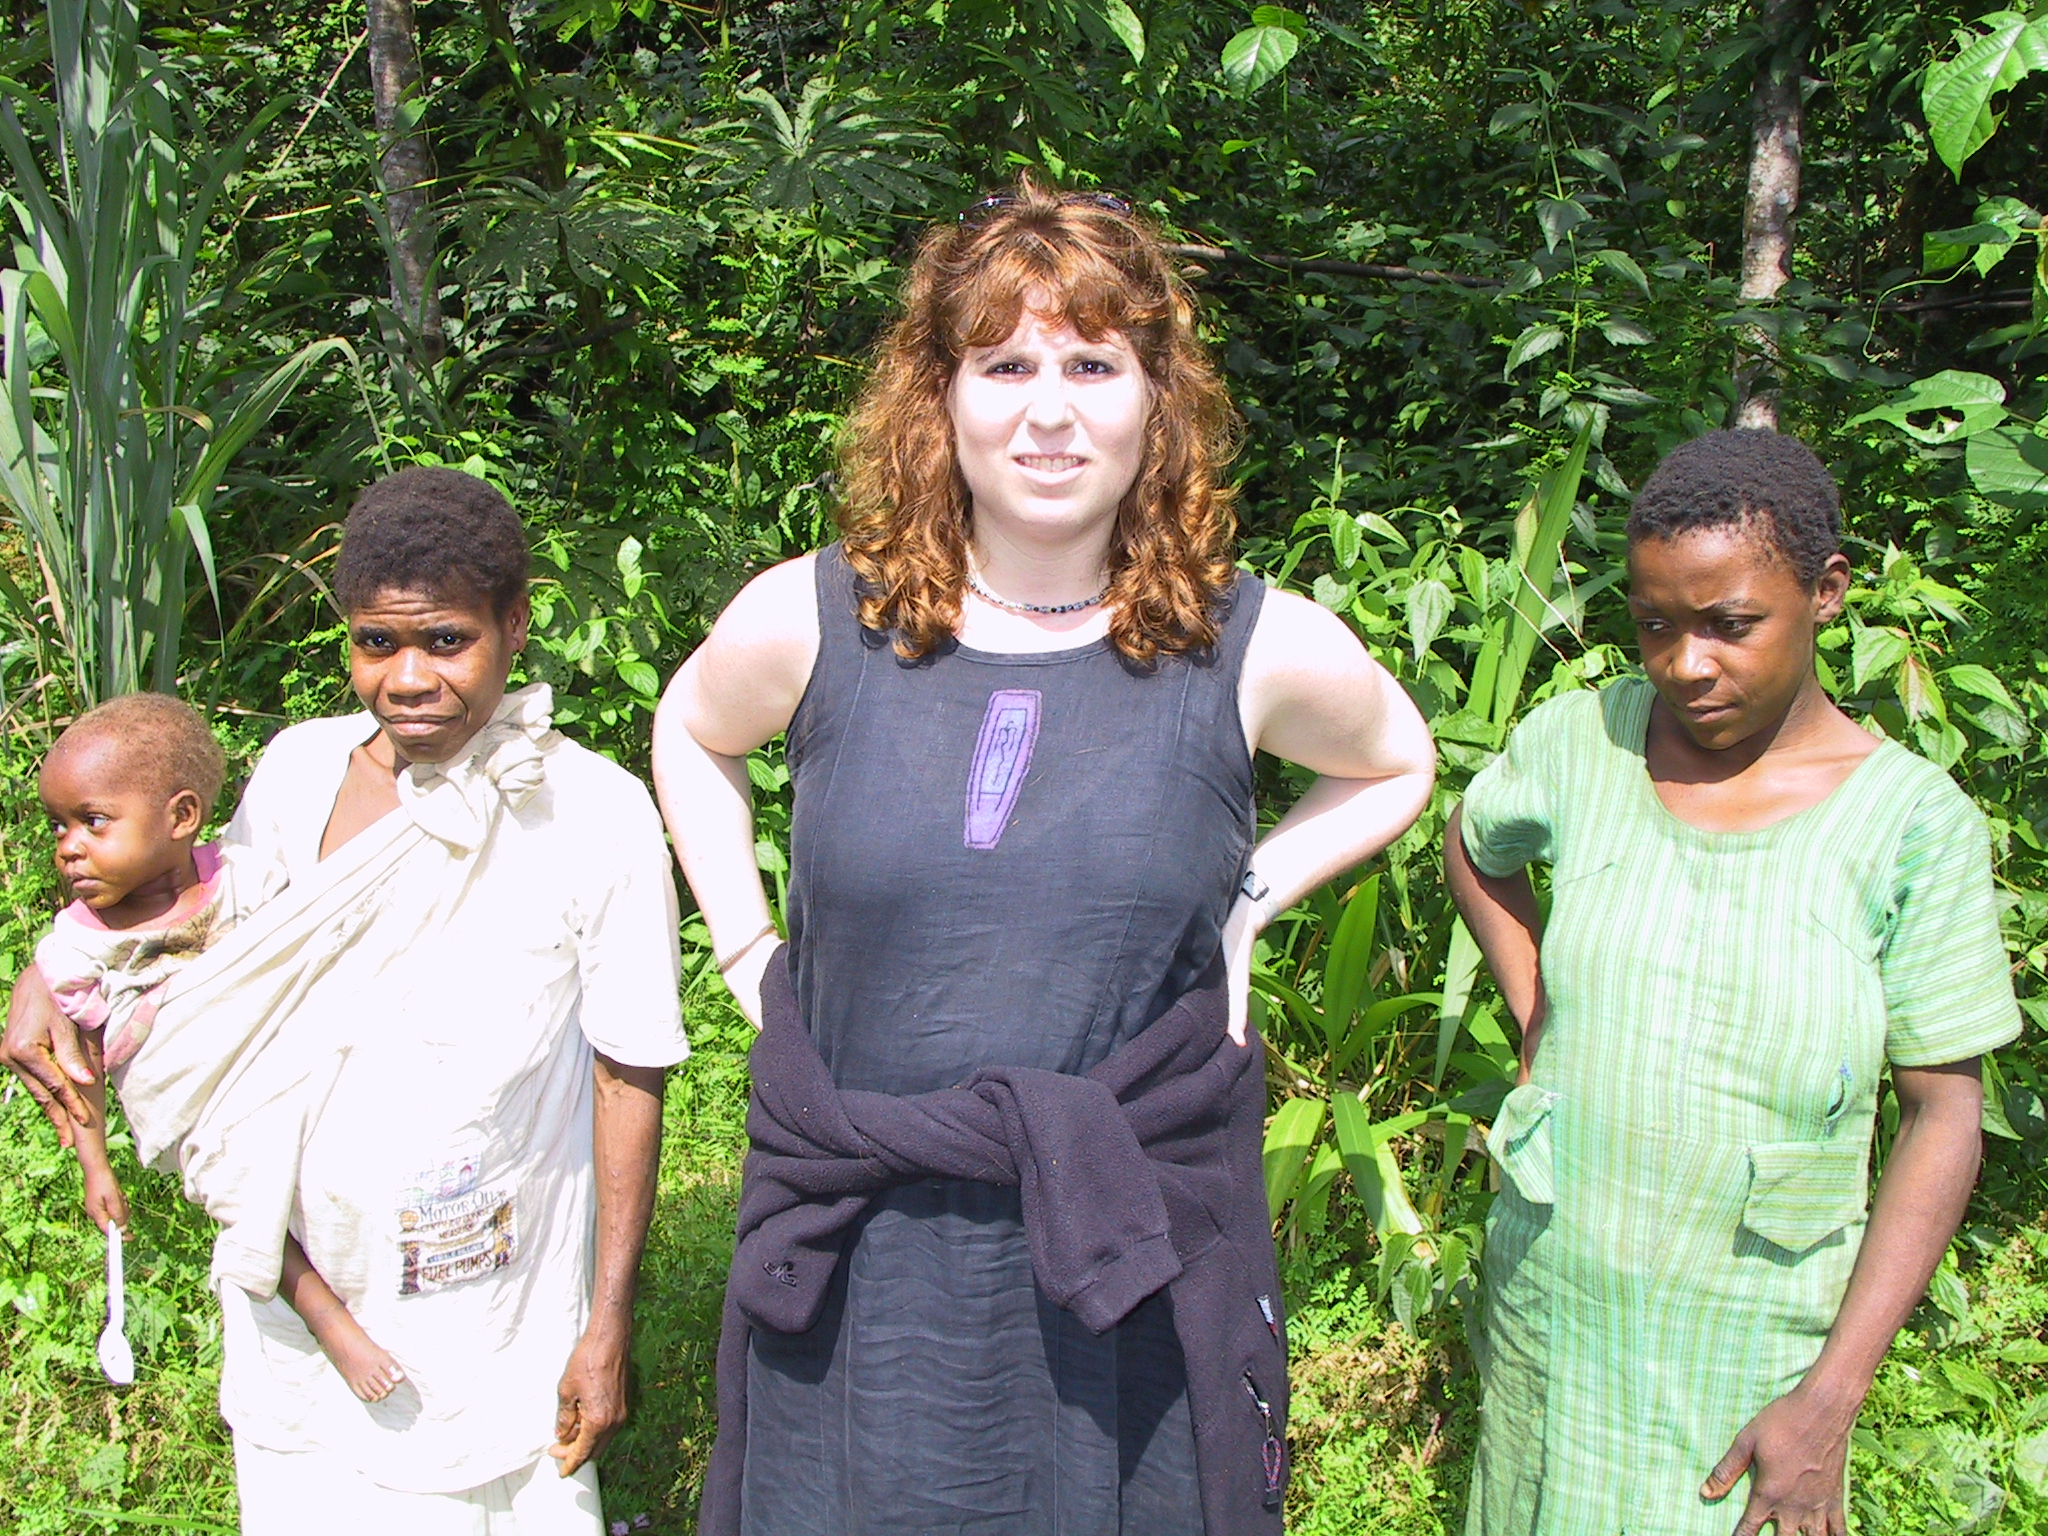 Tishkoff stands with women from the Western Pygmies of Cameroon.